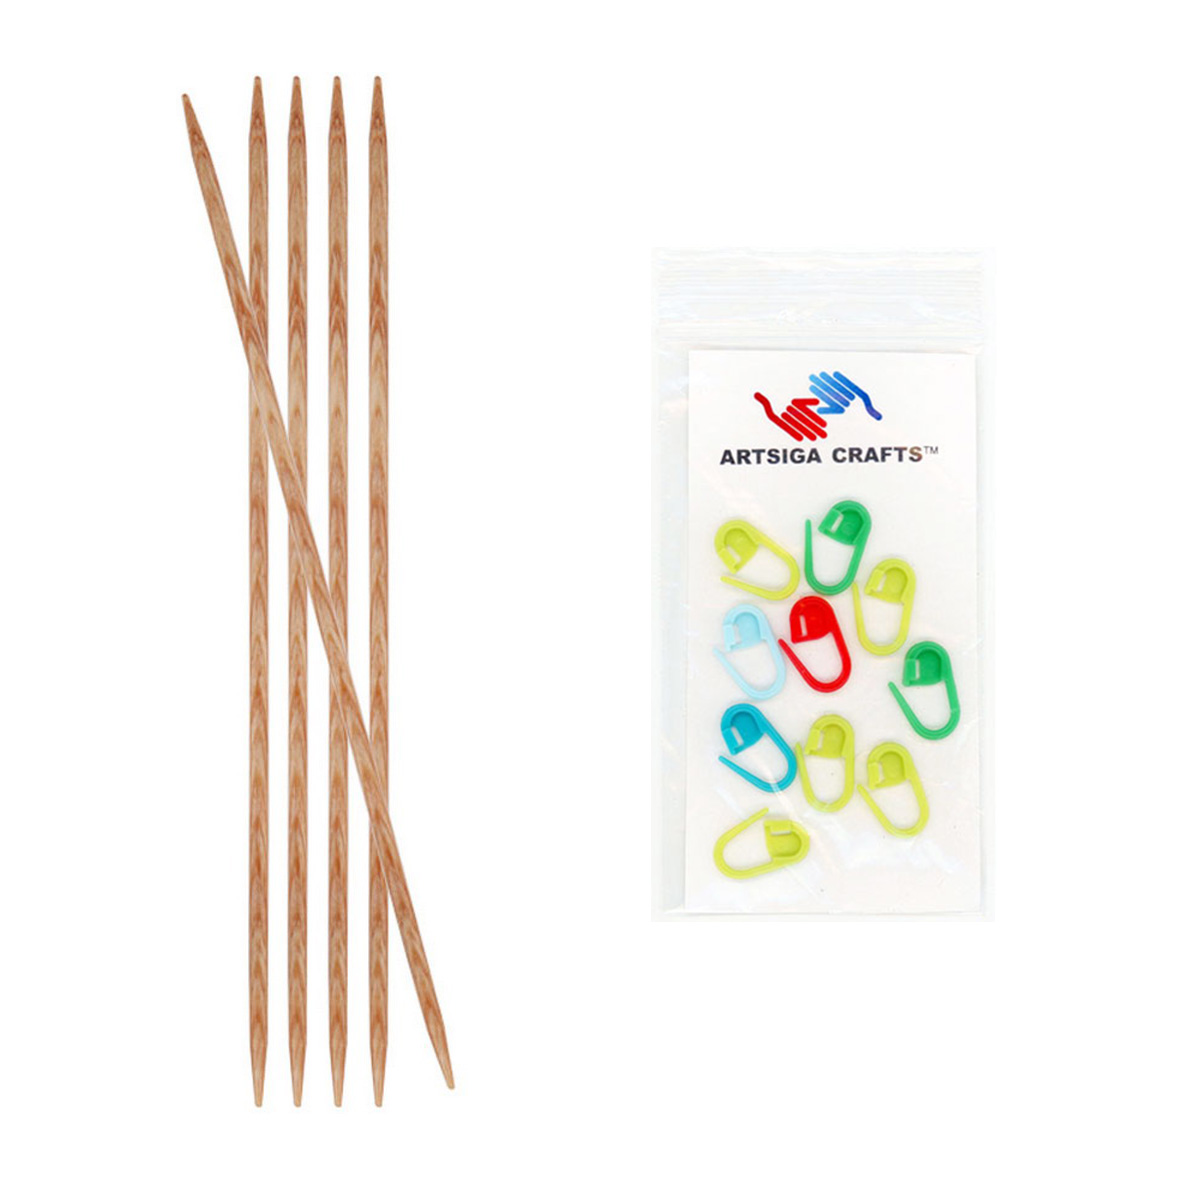 Knitter's Pride Naturalz Double Pointed 6-inch (15cm) Knitting Needles (Set of 5) Bundle with 10 Artsiga Crafts Stitch Markers